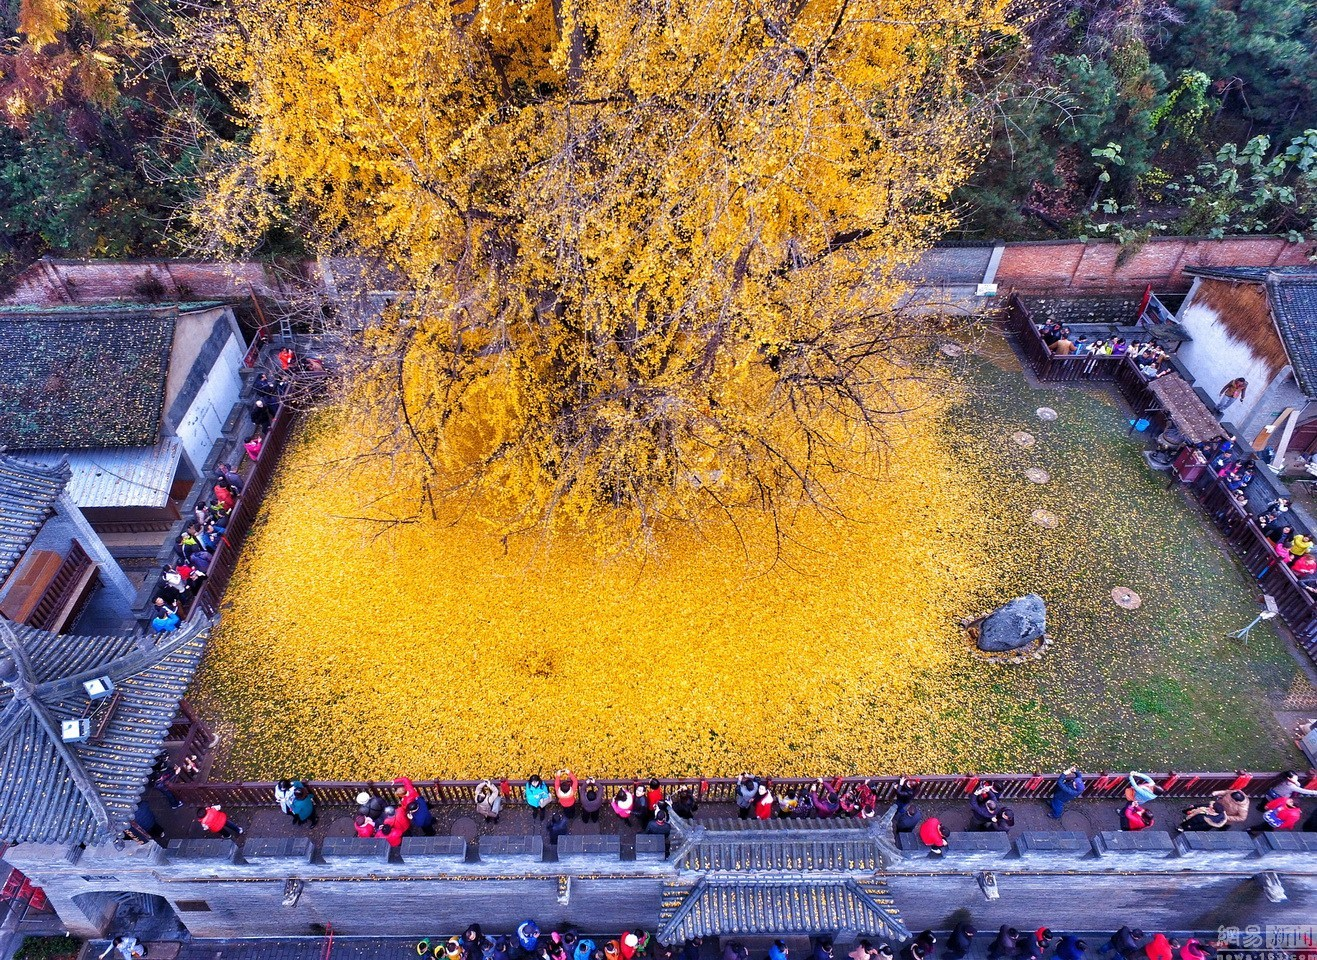 An Ancient Chinese Ginkgo Tree Drops an Ocean of Golden Leaves | Colossal